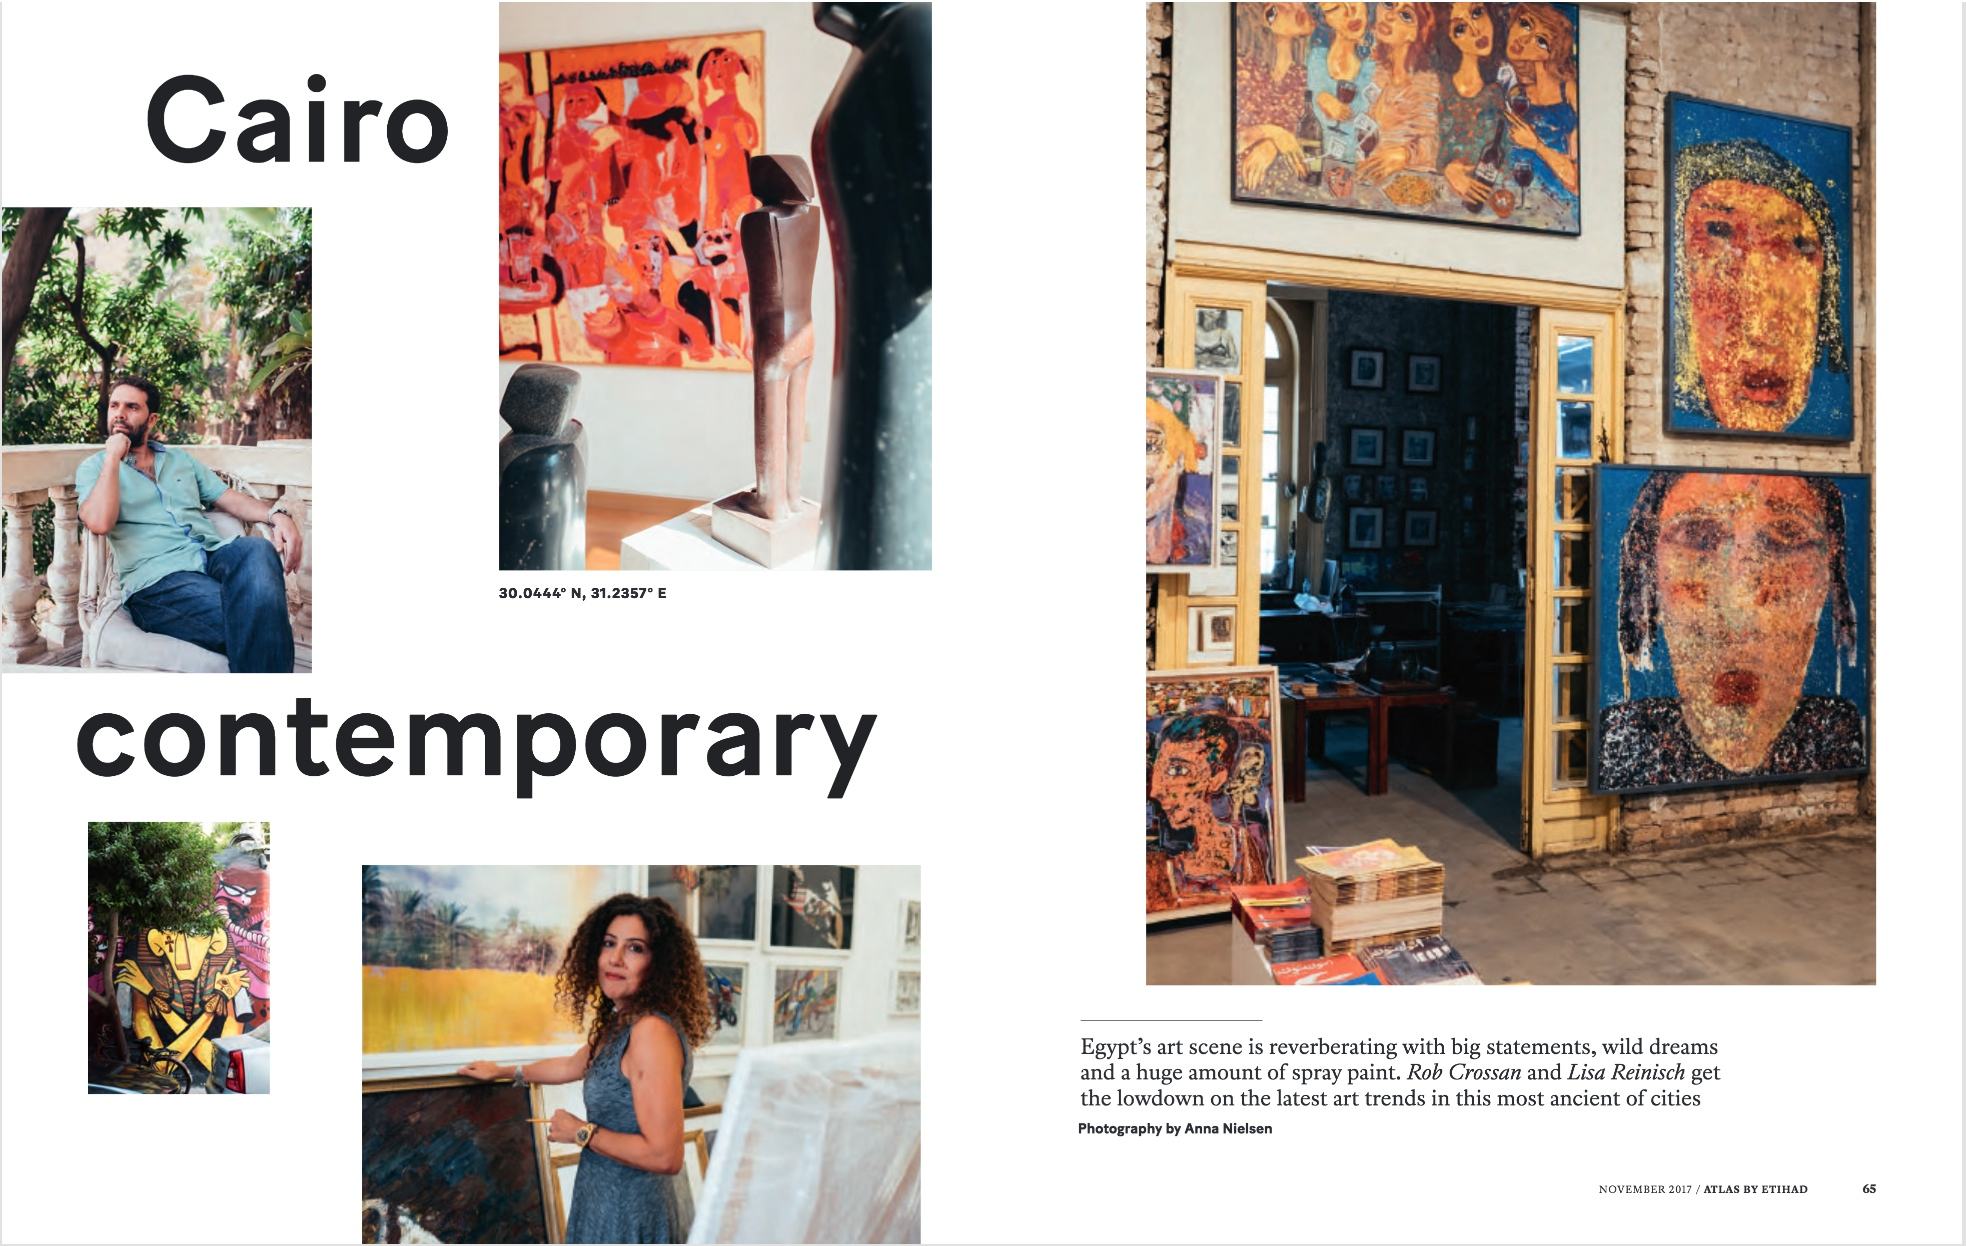 A feature with Rob Crossan on Cairo's contemporary art scene for the November 2017 edition of Atlas, the Etihad inflight title. Great imagery by UAE-based photographer Anna Nielsen. Go to page 64 of the e-magazine to access the full article.